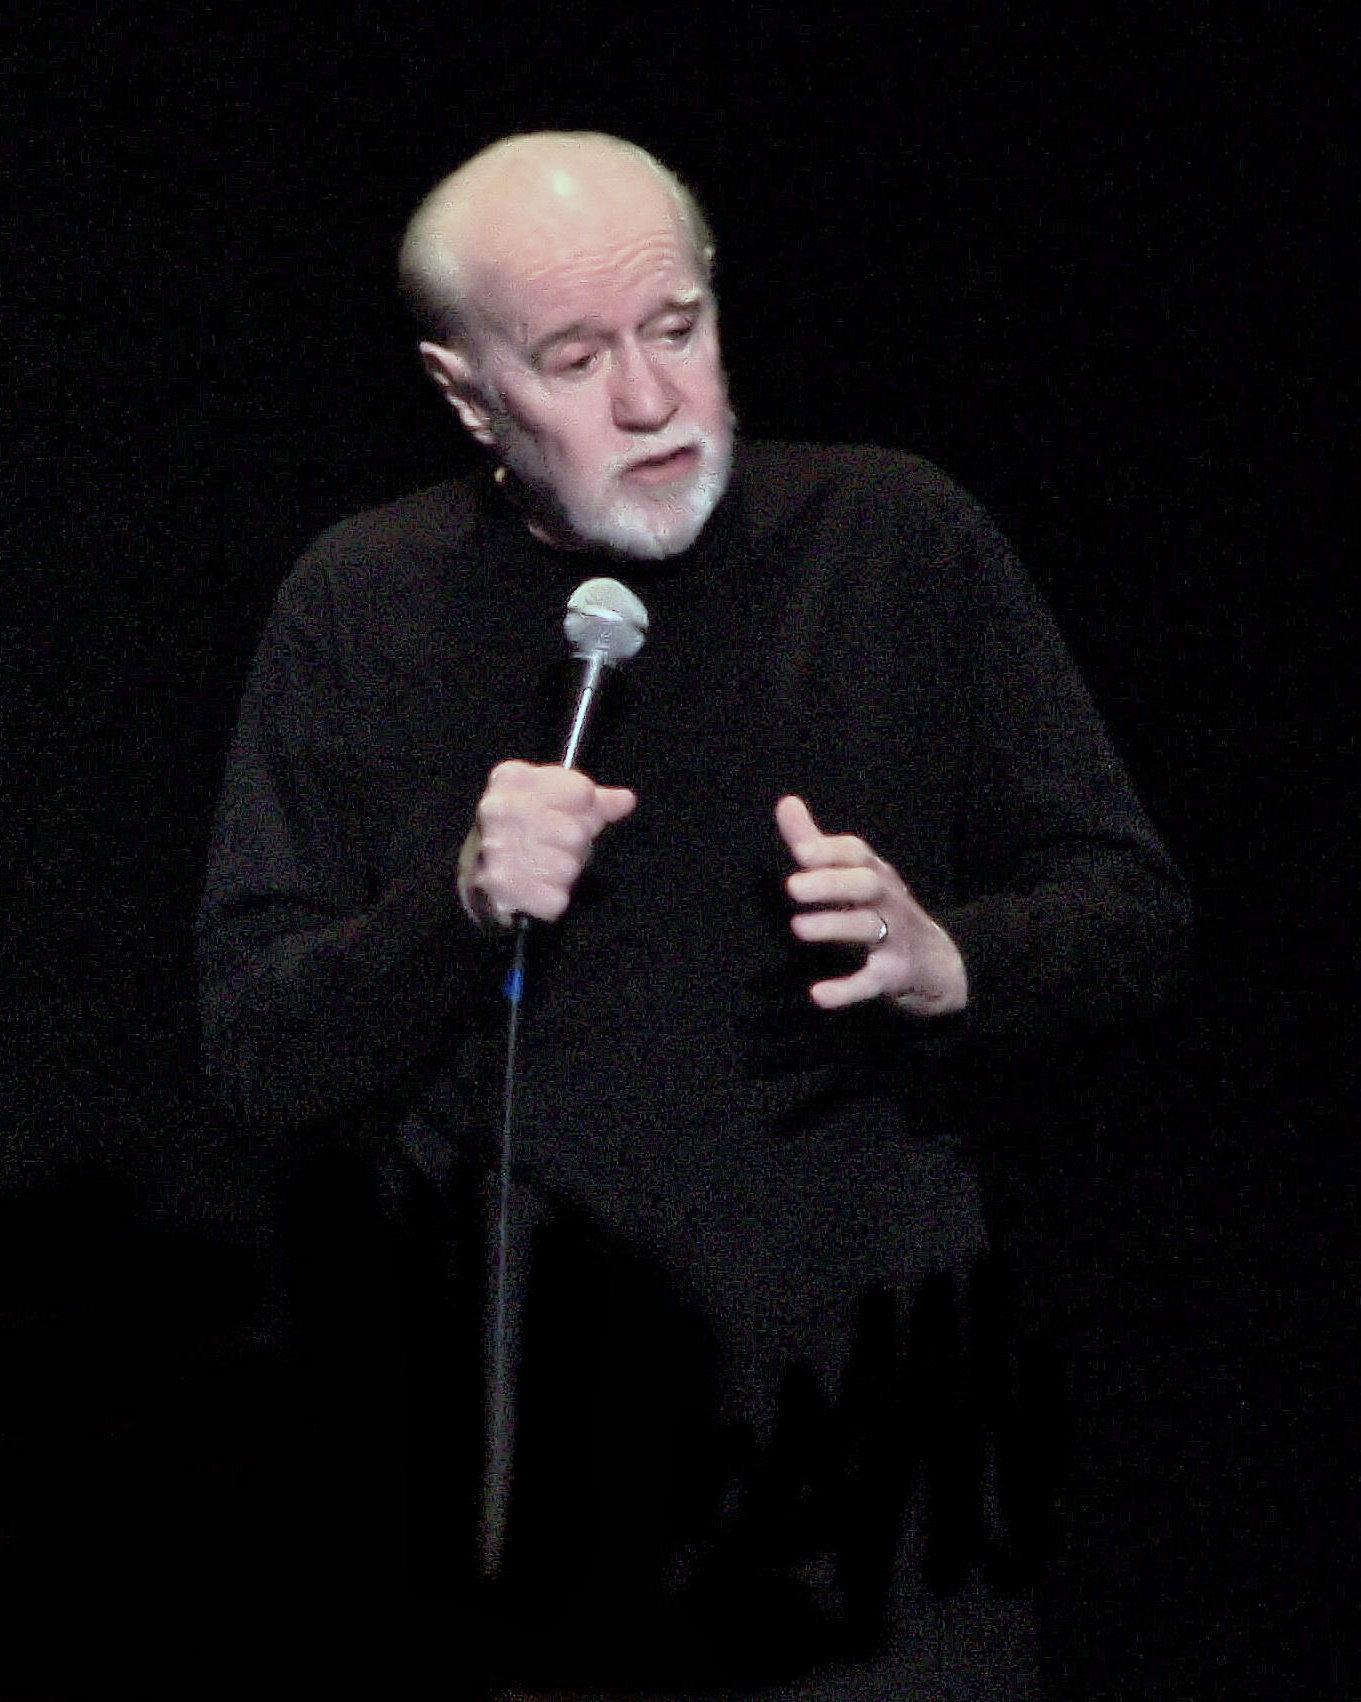 Portrait of George Carlin